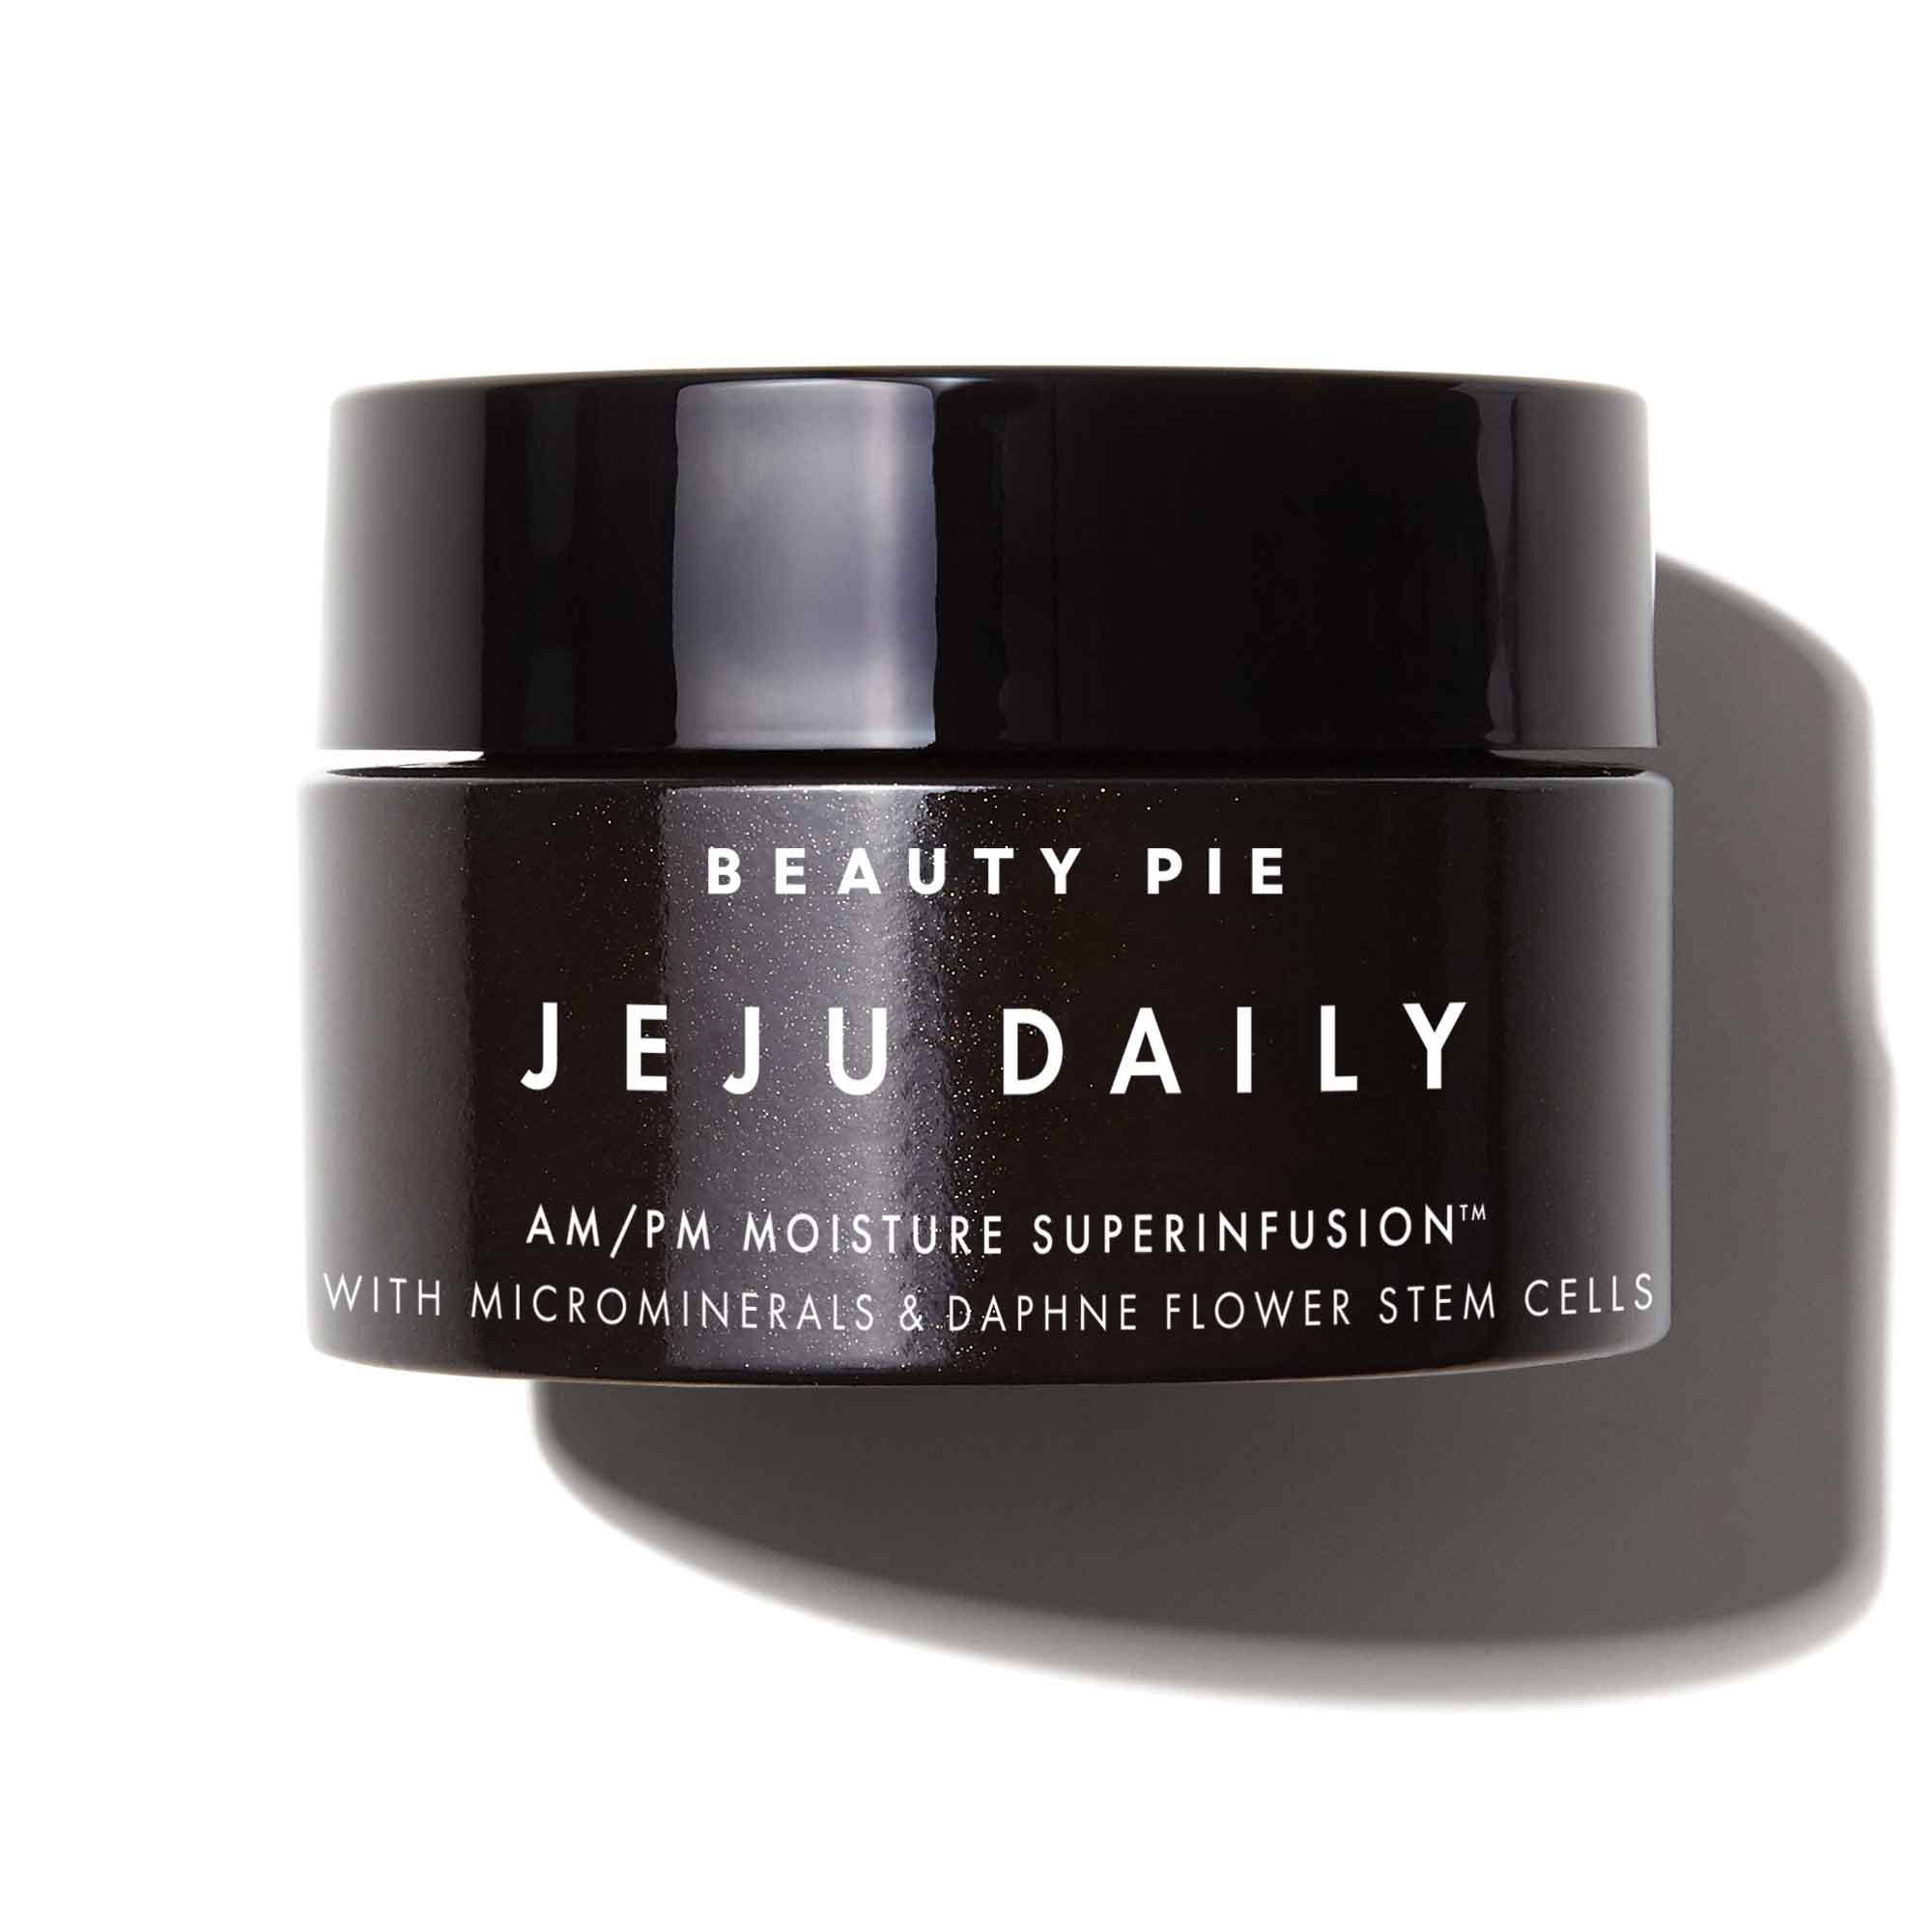 Jeju Daily AM/PM Moisture Superfusion™ by Beauty Pie